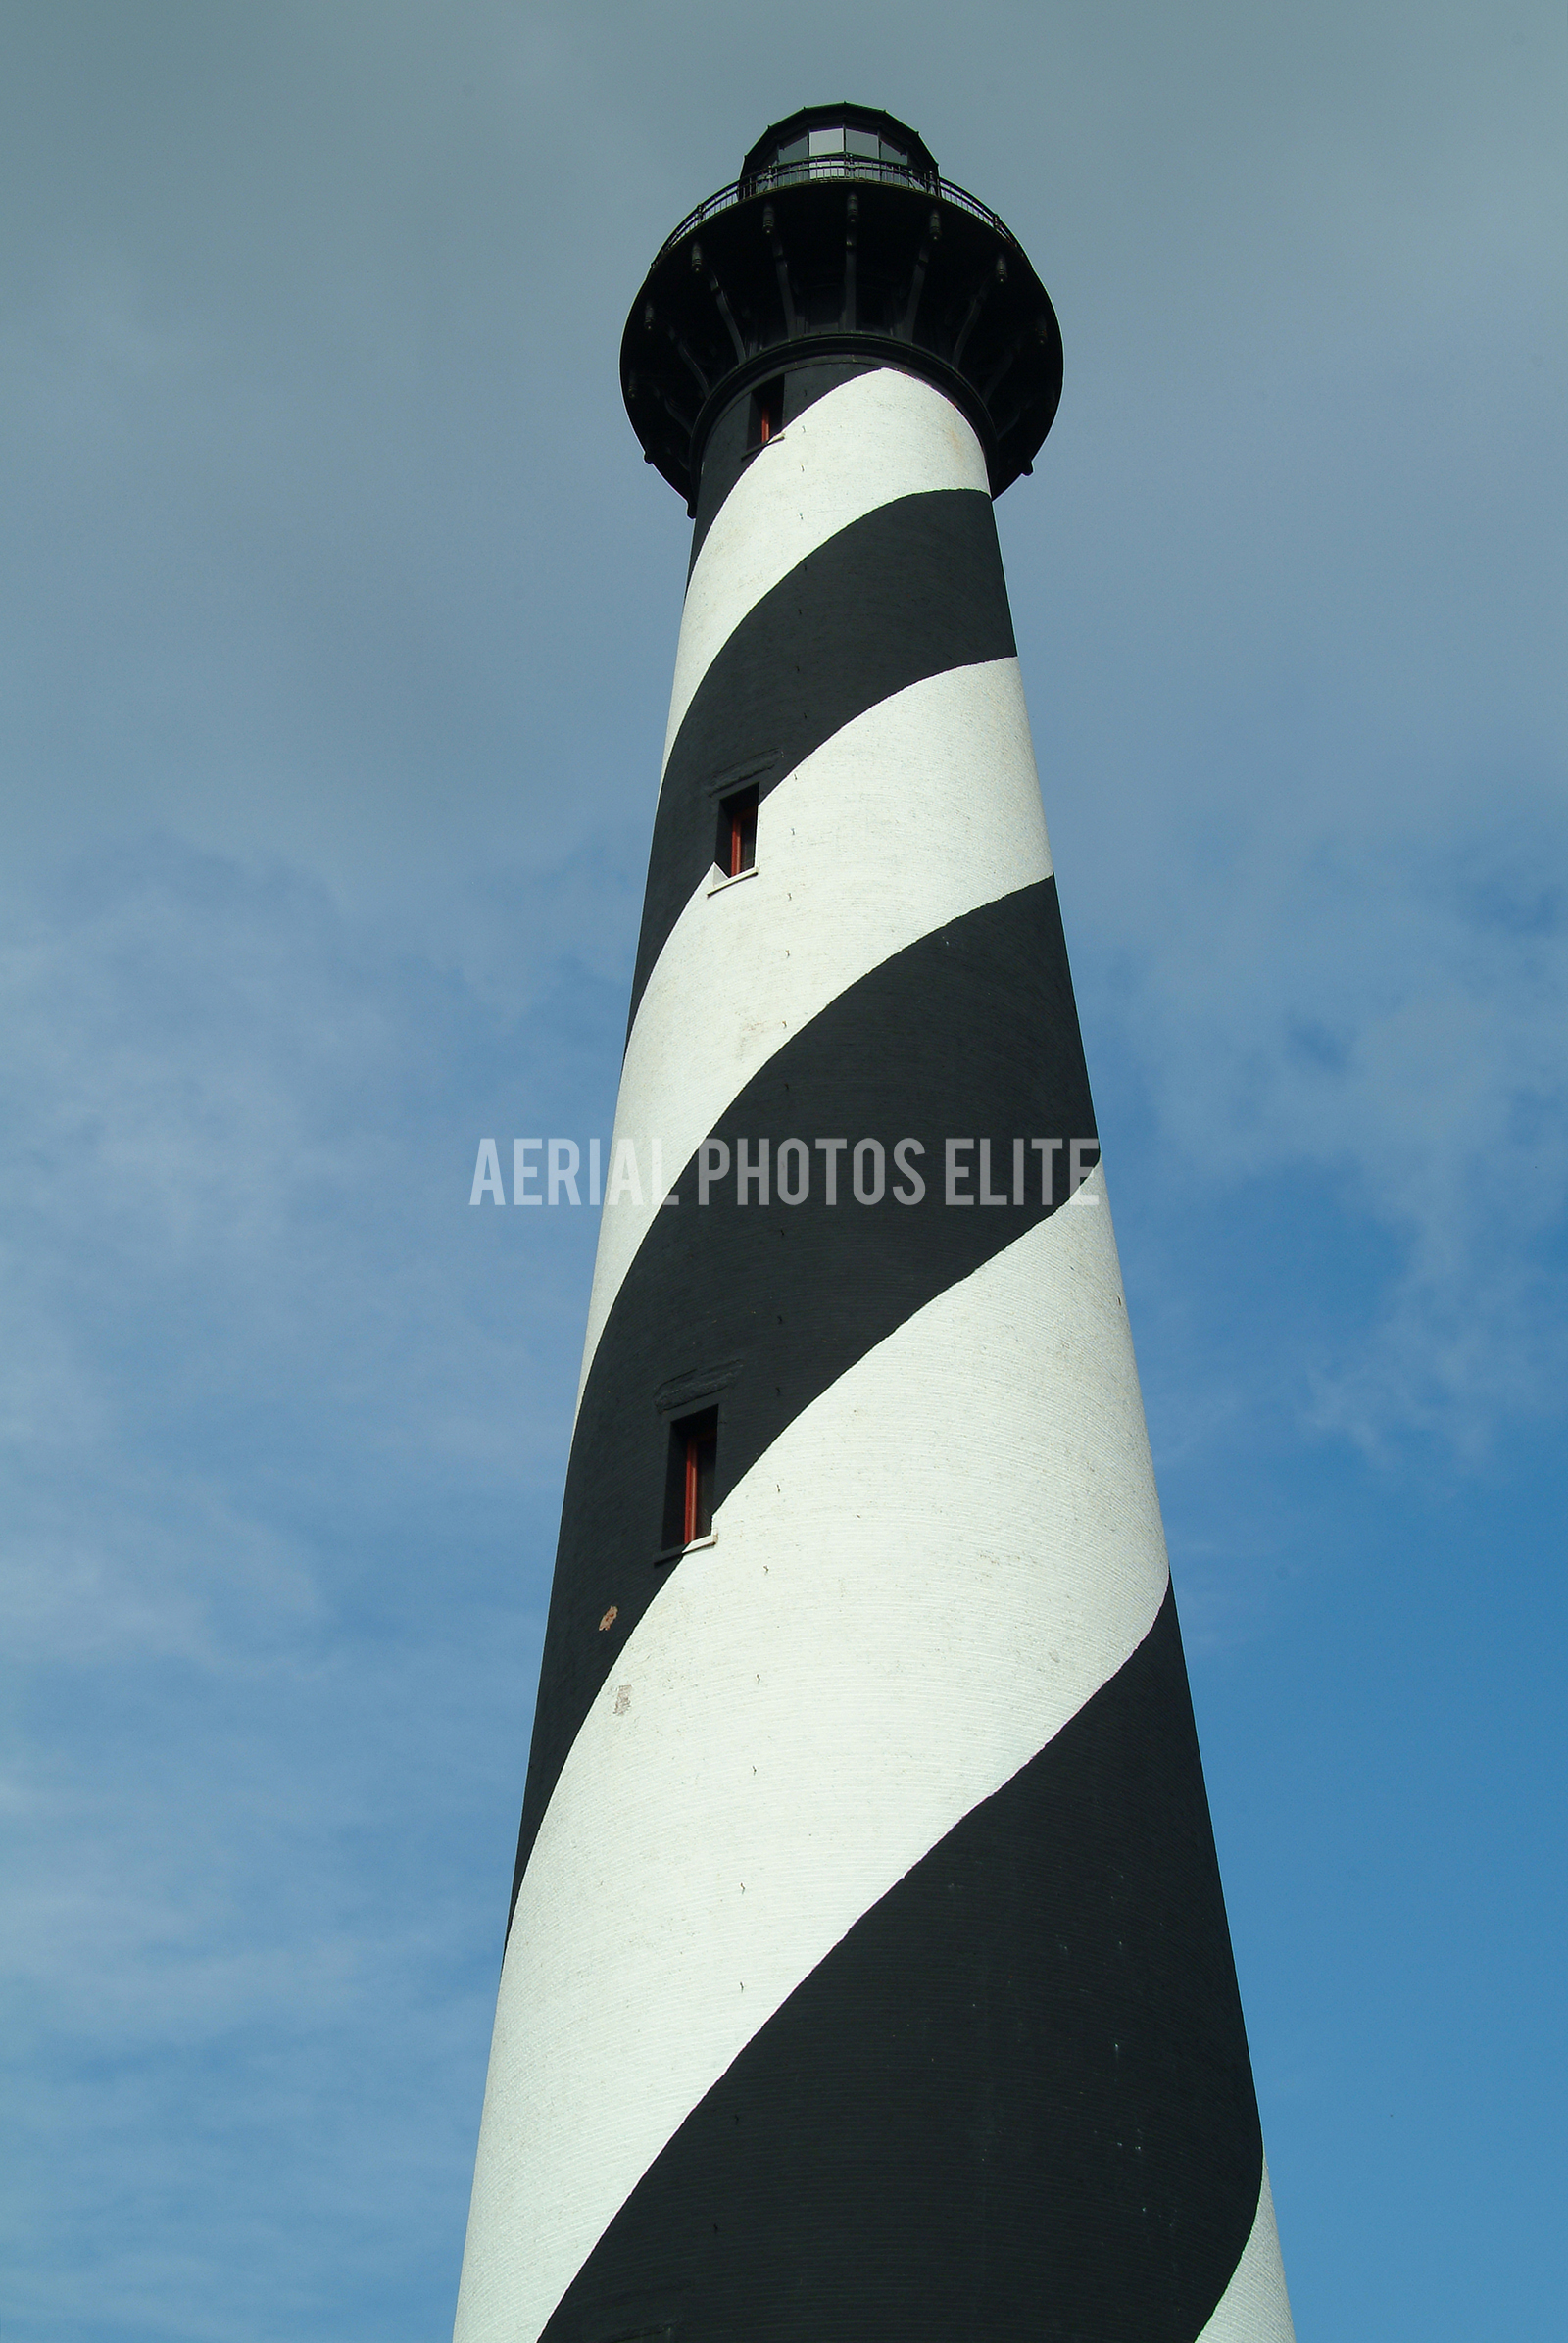 Cape Hatteras Lighthouse NC | Aerial Photos Elite